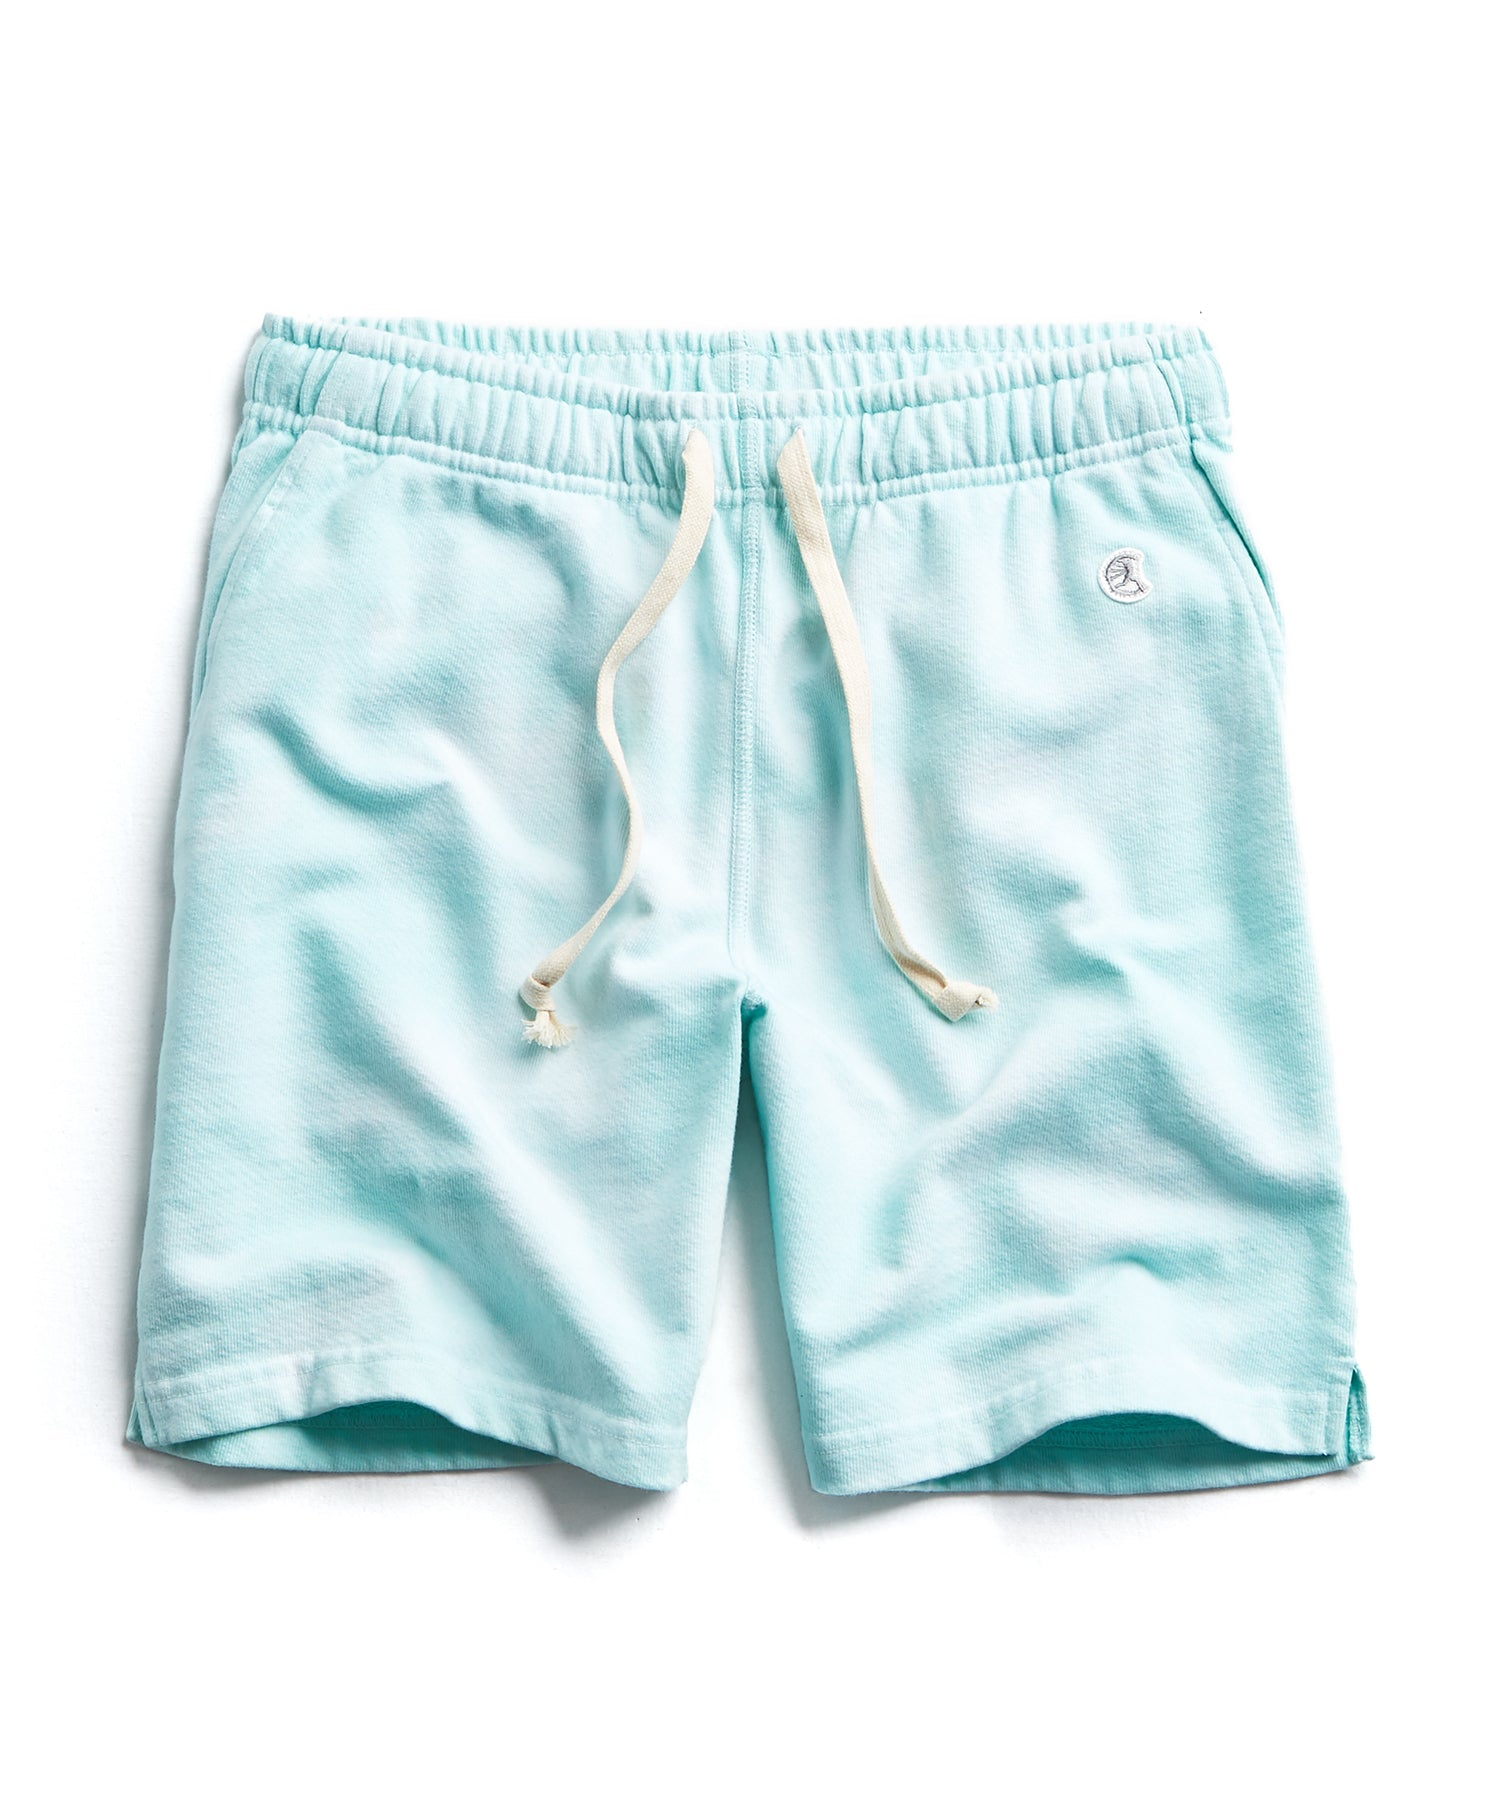 Minty Green Tie Dye Warm Up Short